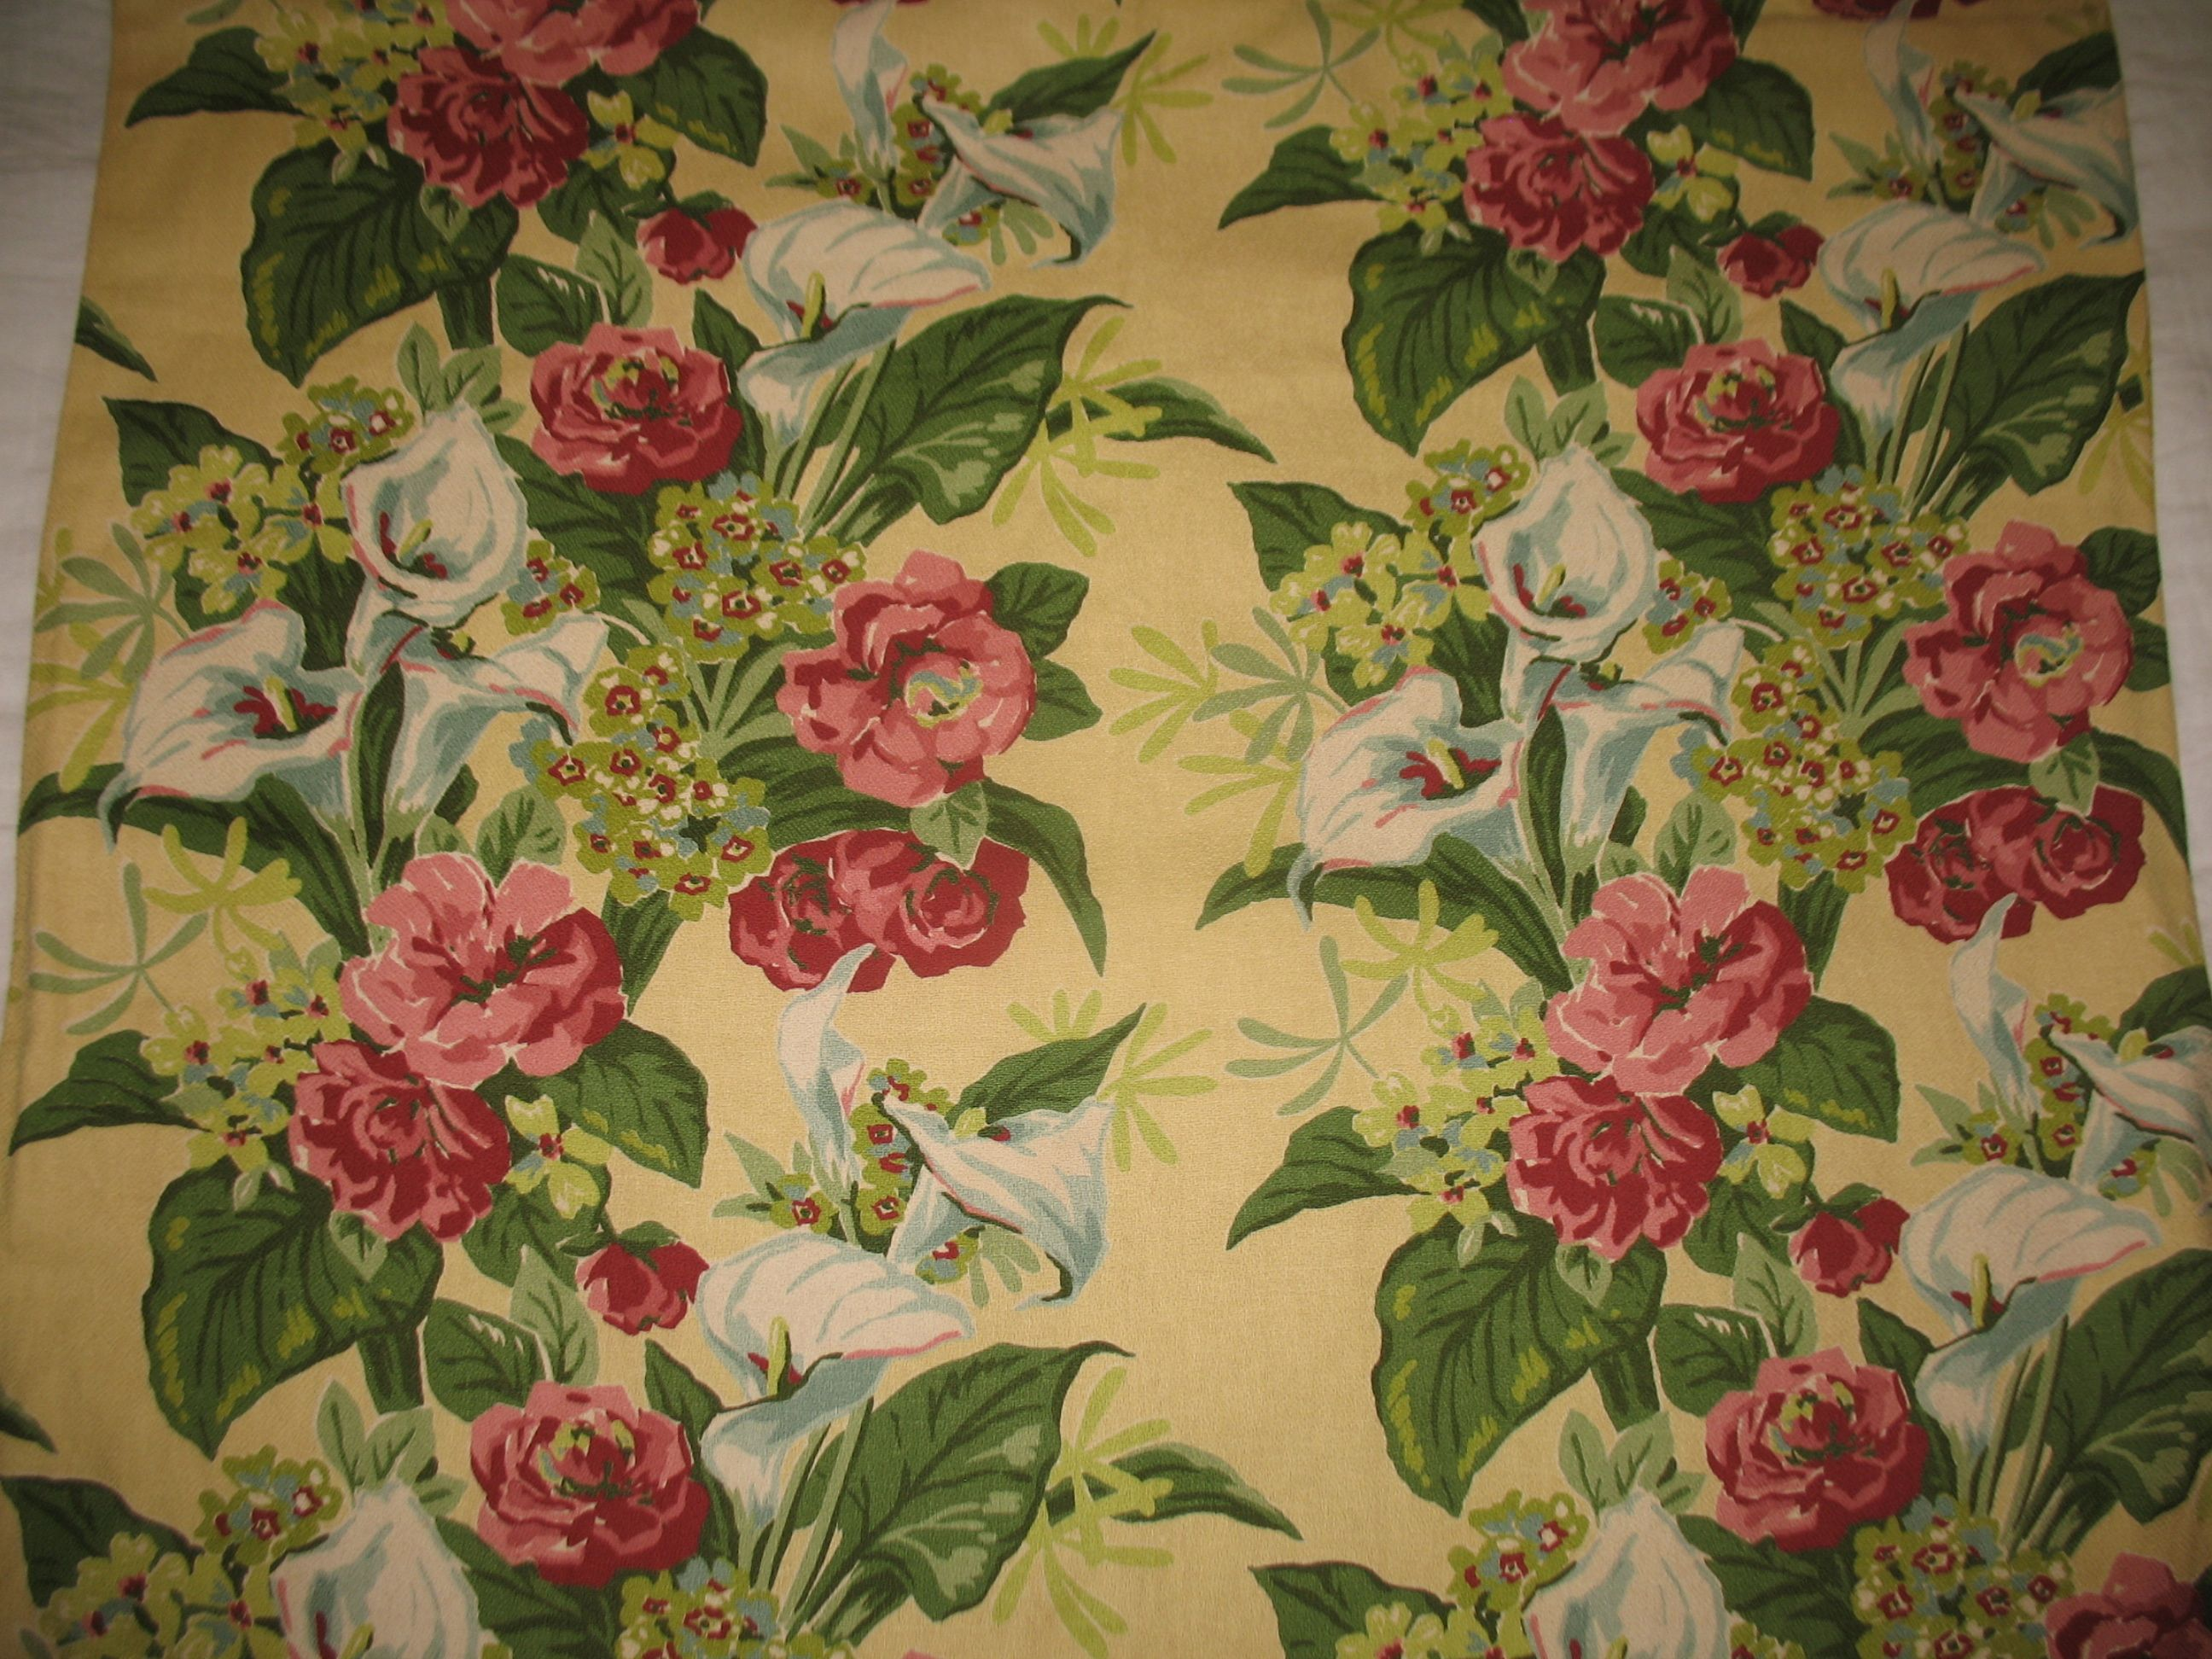 Roses Lily Bouquet Printed On Fabric Panel Make A Cushion Upholstery Craft